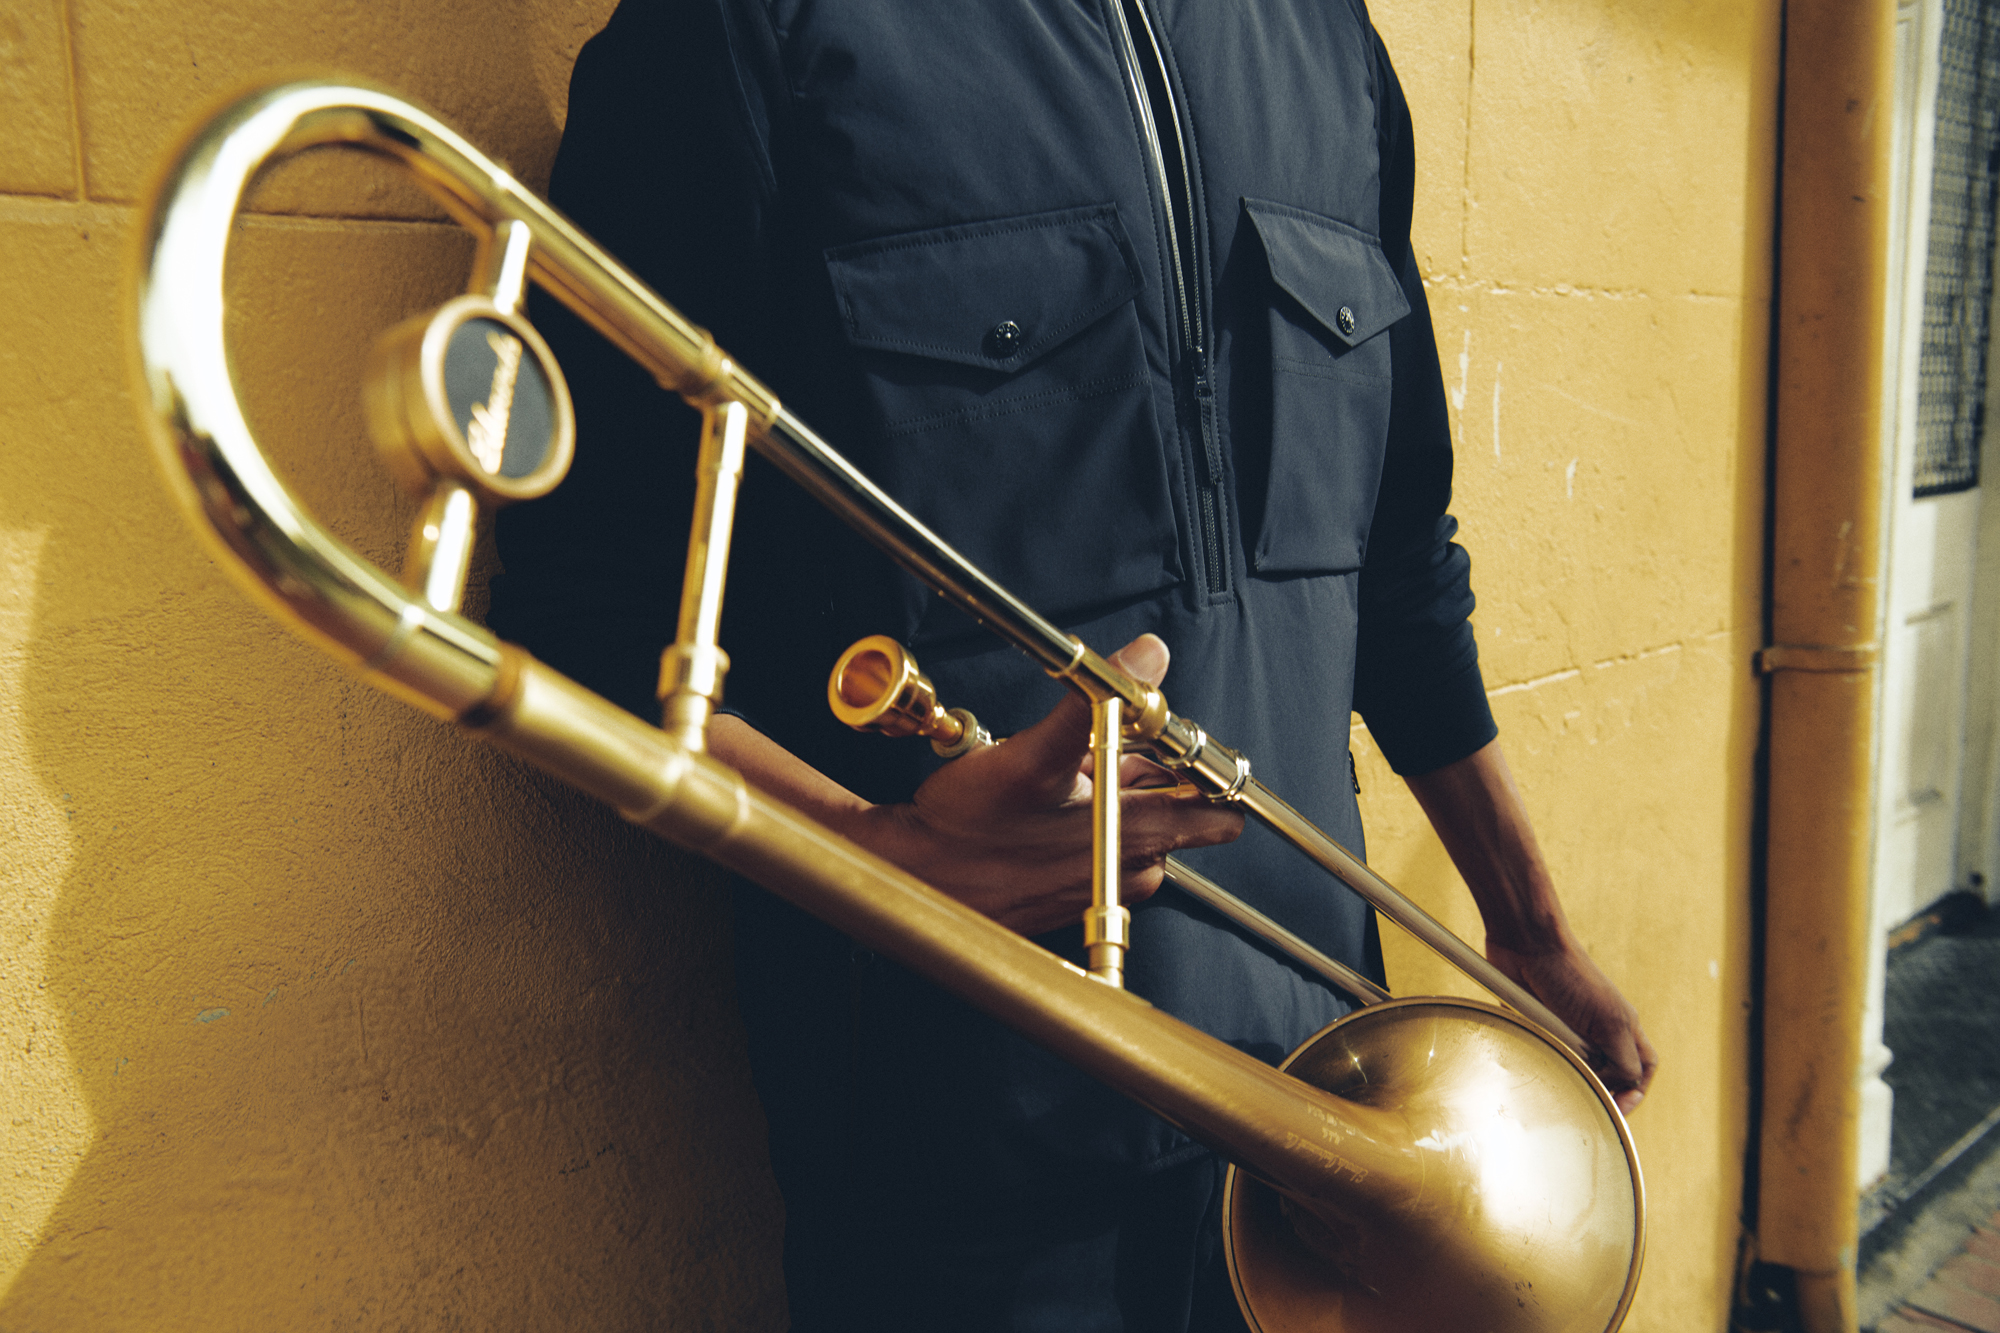 Trombone Shorty wearing Stone Island in the French Quarter